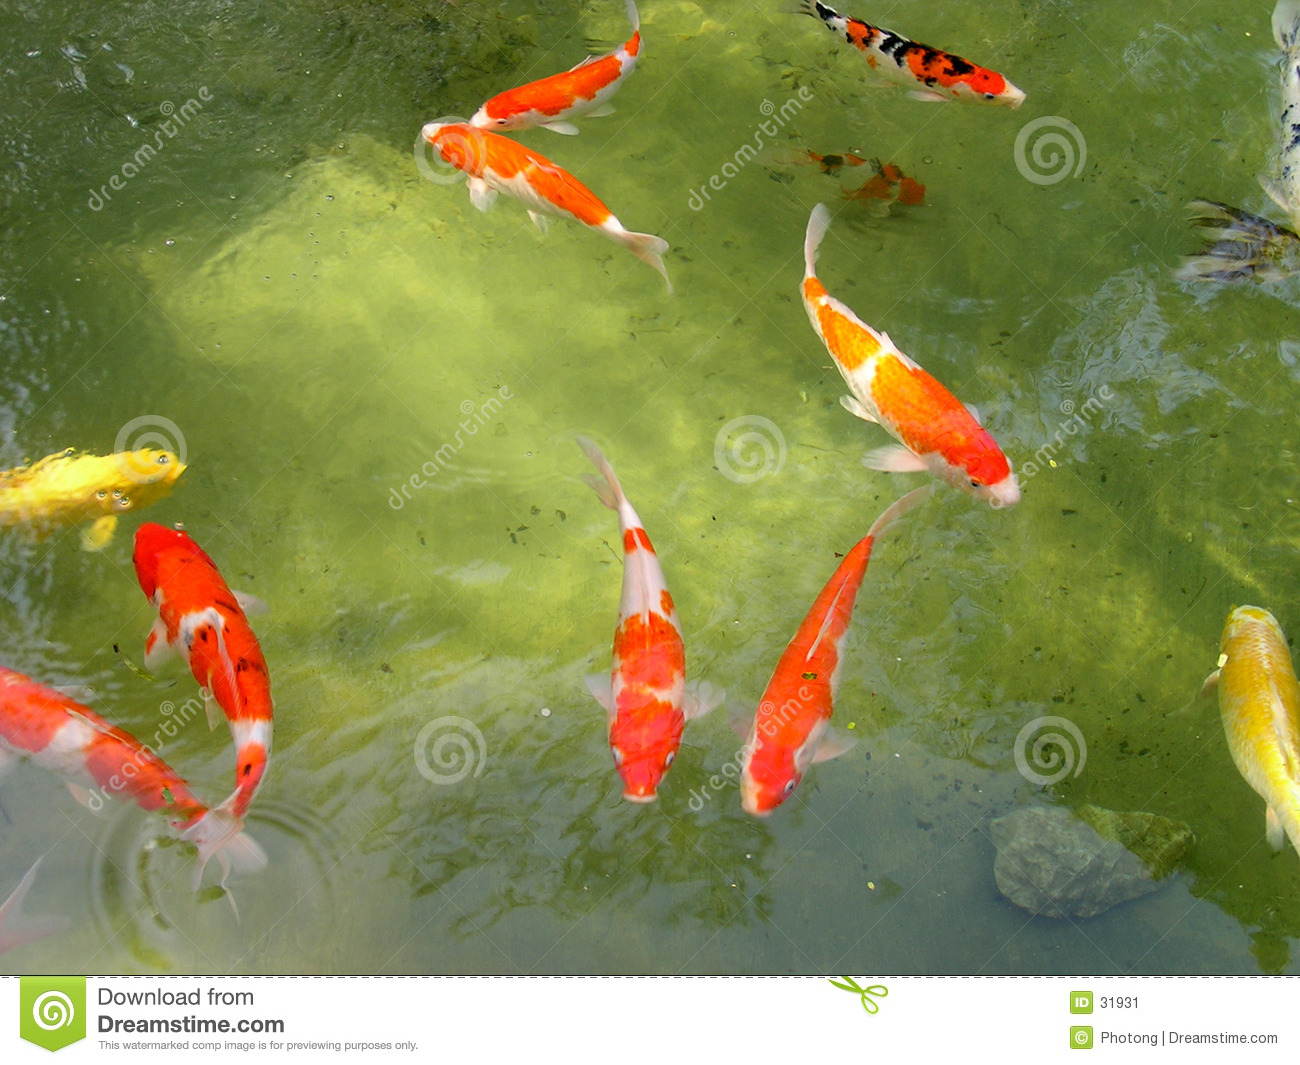 Koi fish pond stock image image of swimming carp fish for Koi carp fish pond